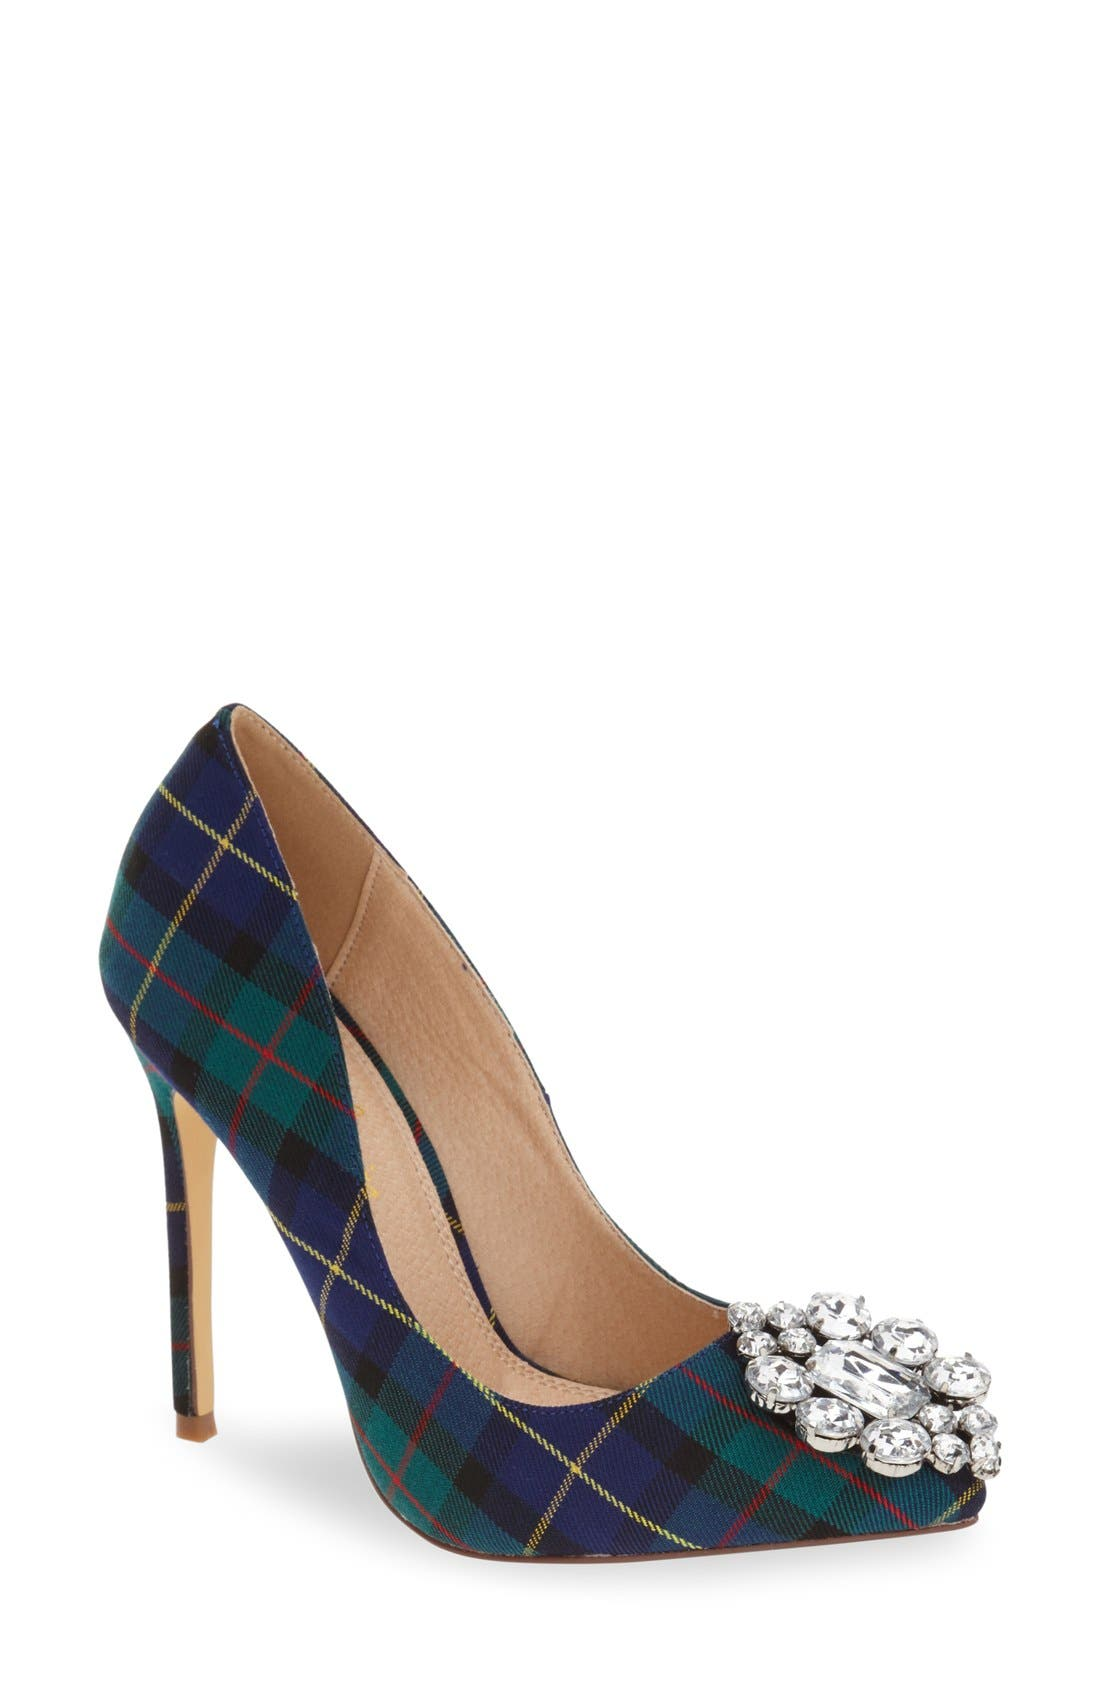 Alternate Image 1 Selected - Lauren Lorraine Crystal Pointy Toe Pump (Women)